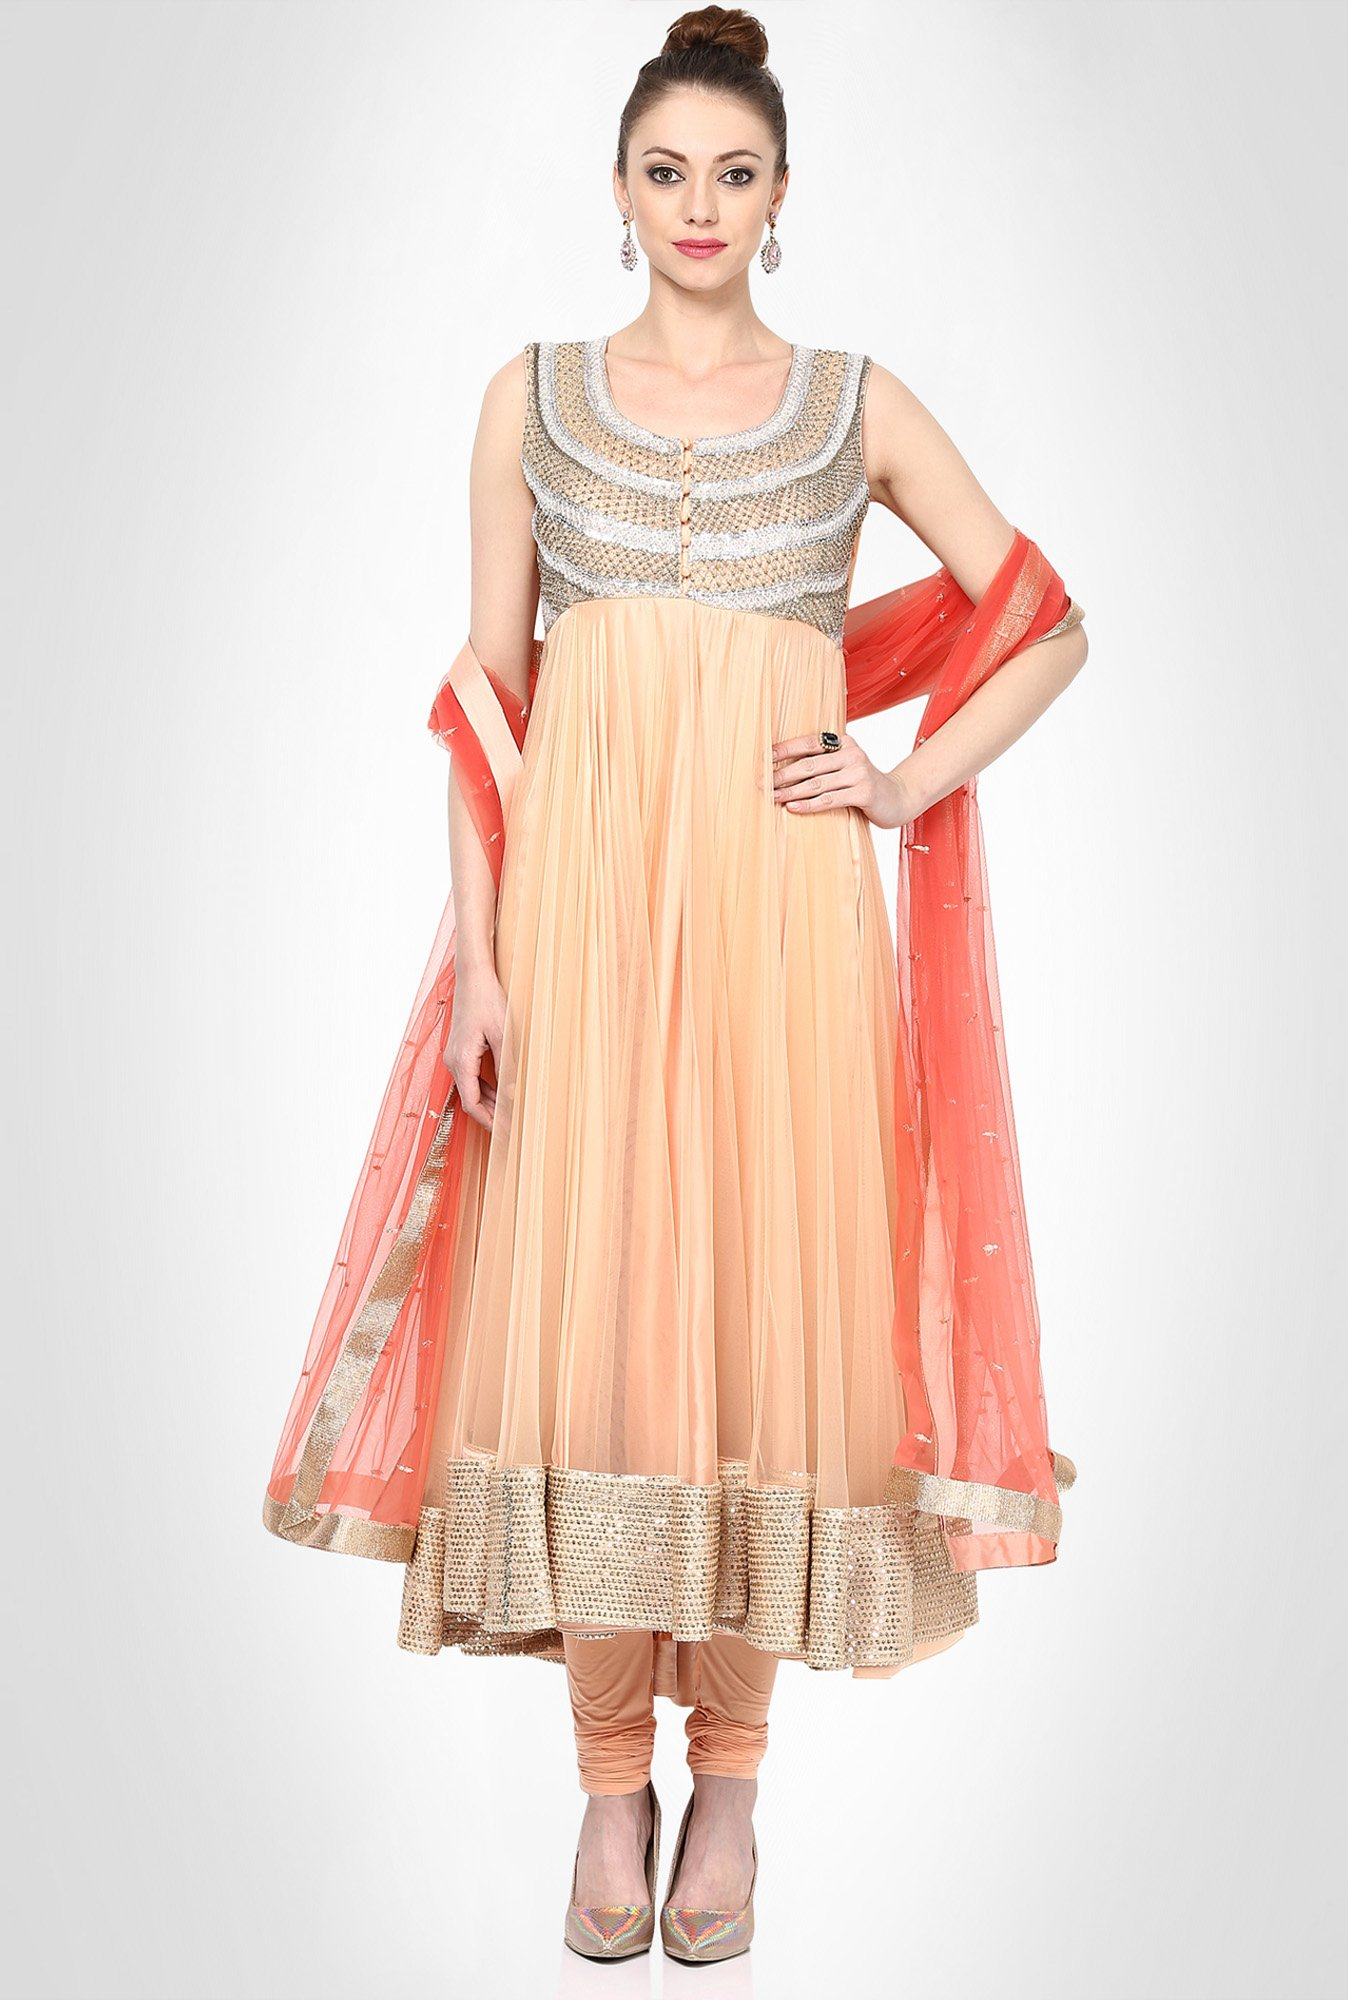 Himani Shah Designer Wear Peach Suit Set by Kimaya